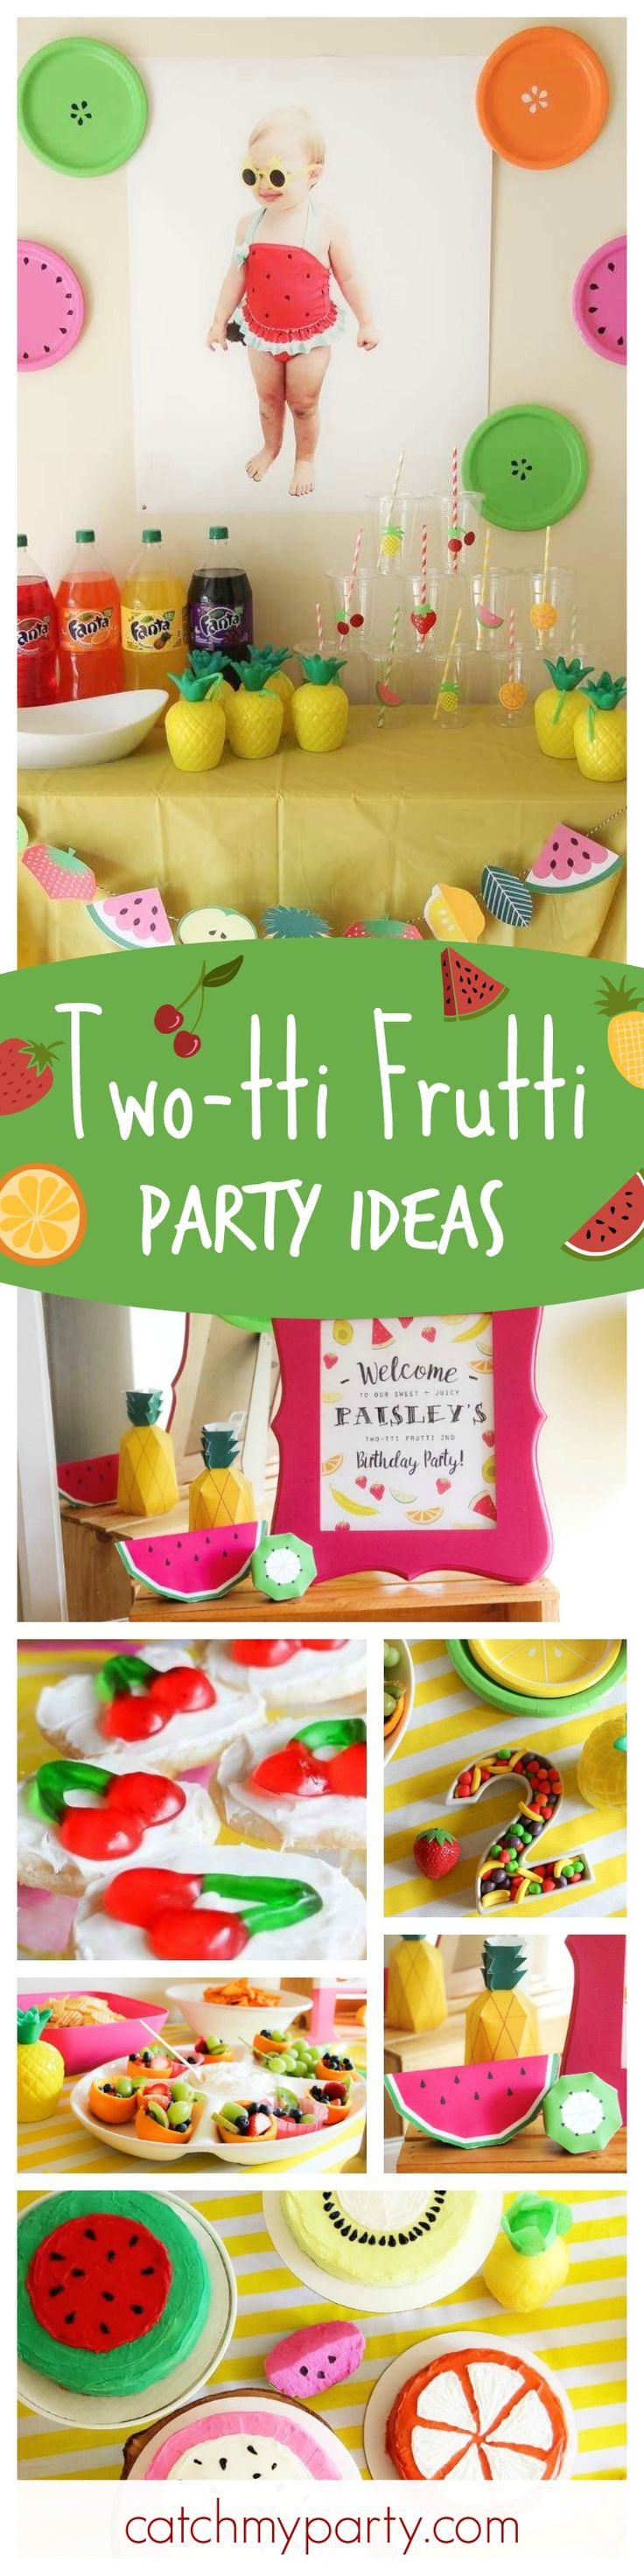 You won't want to miss this fun Two-tti Frutti Birthday party! The colorful decorations are awesome! See more party ideas at CatchMyParty.com